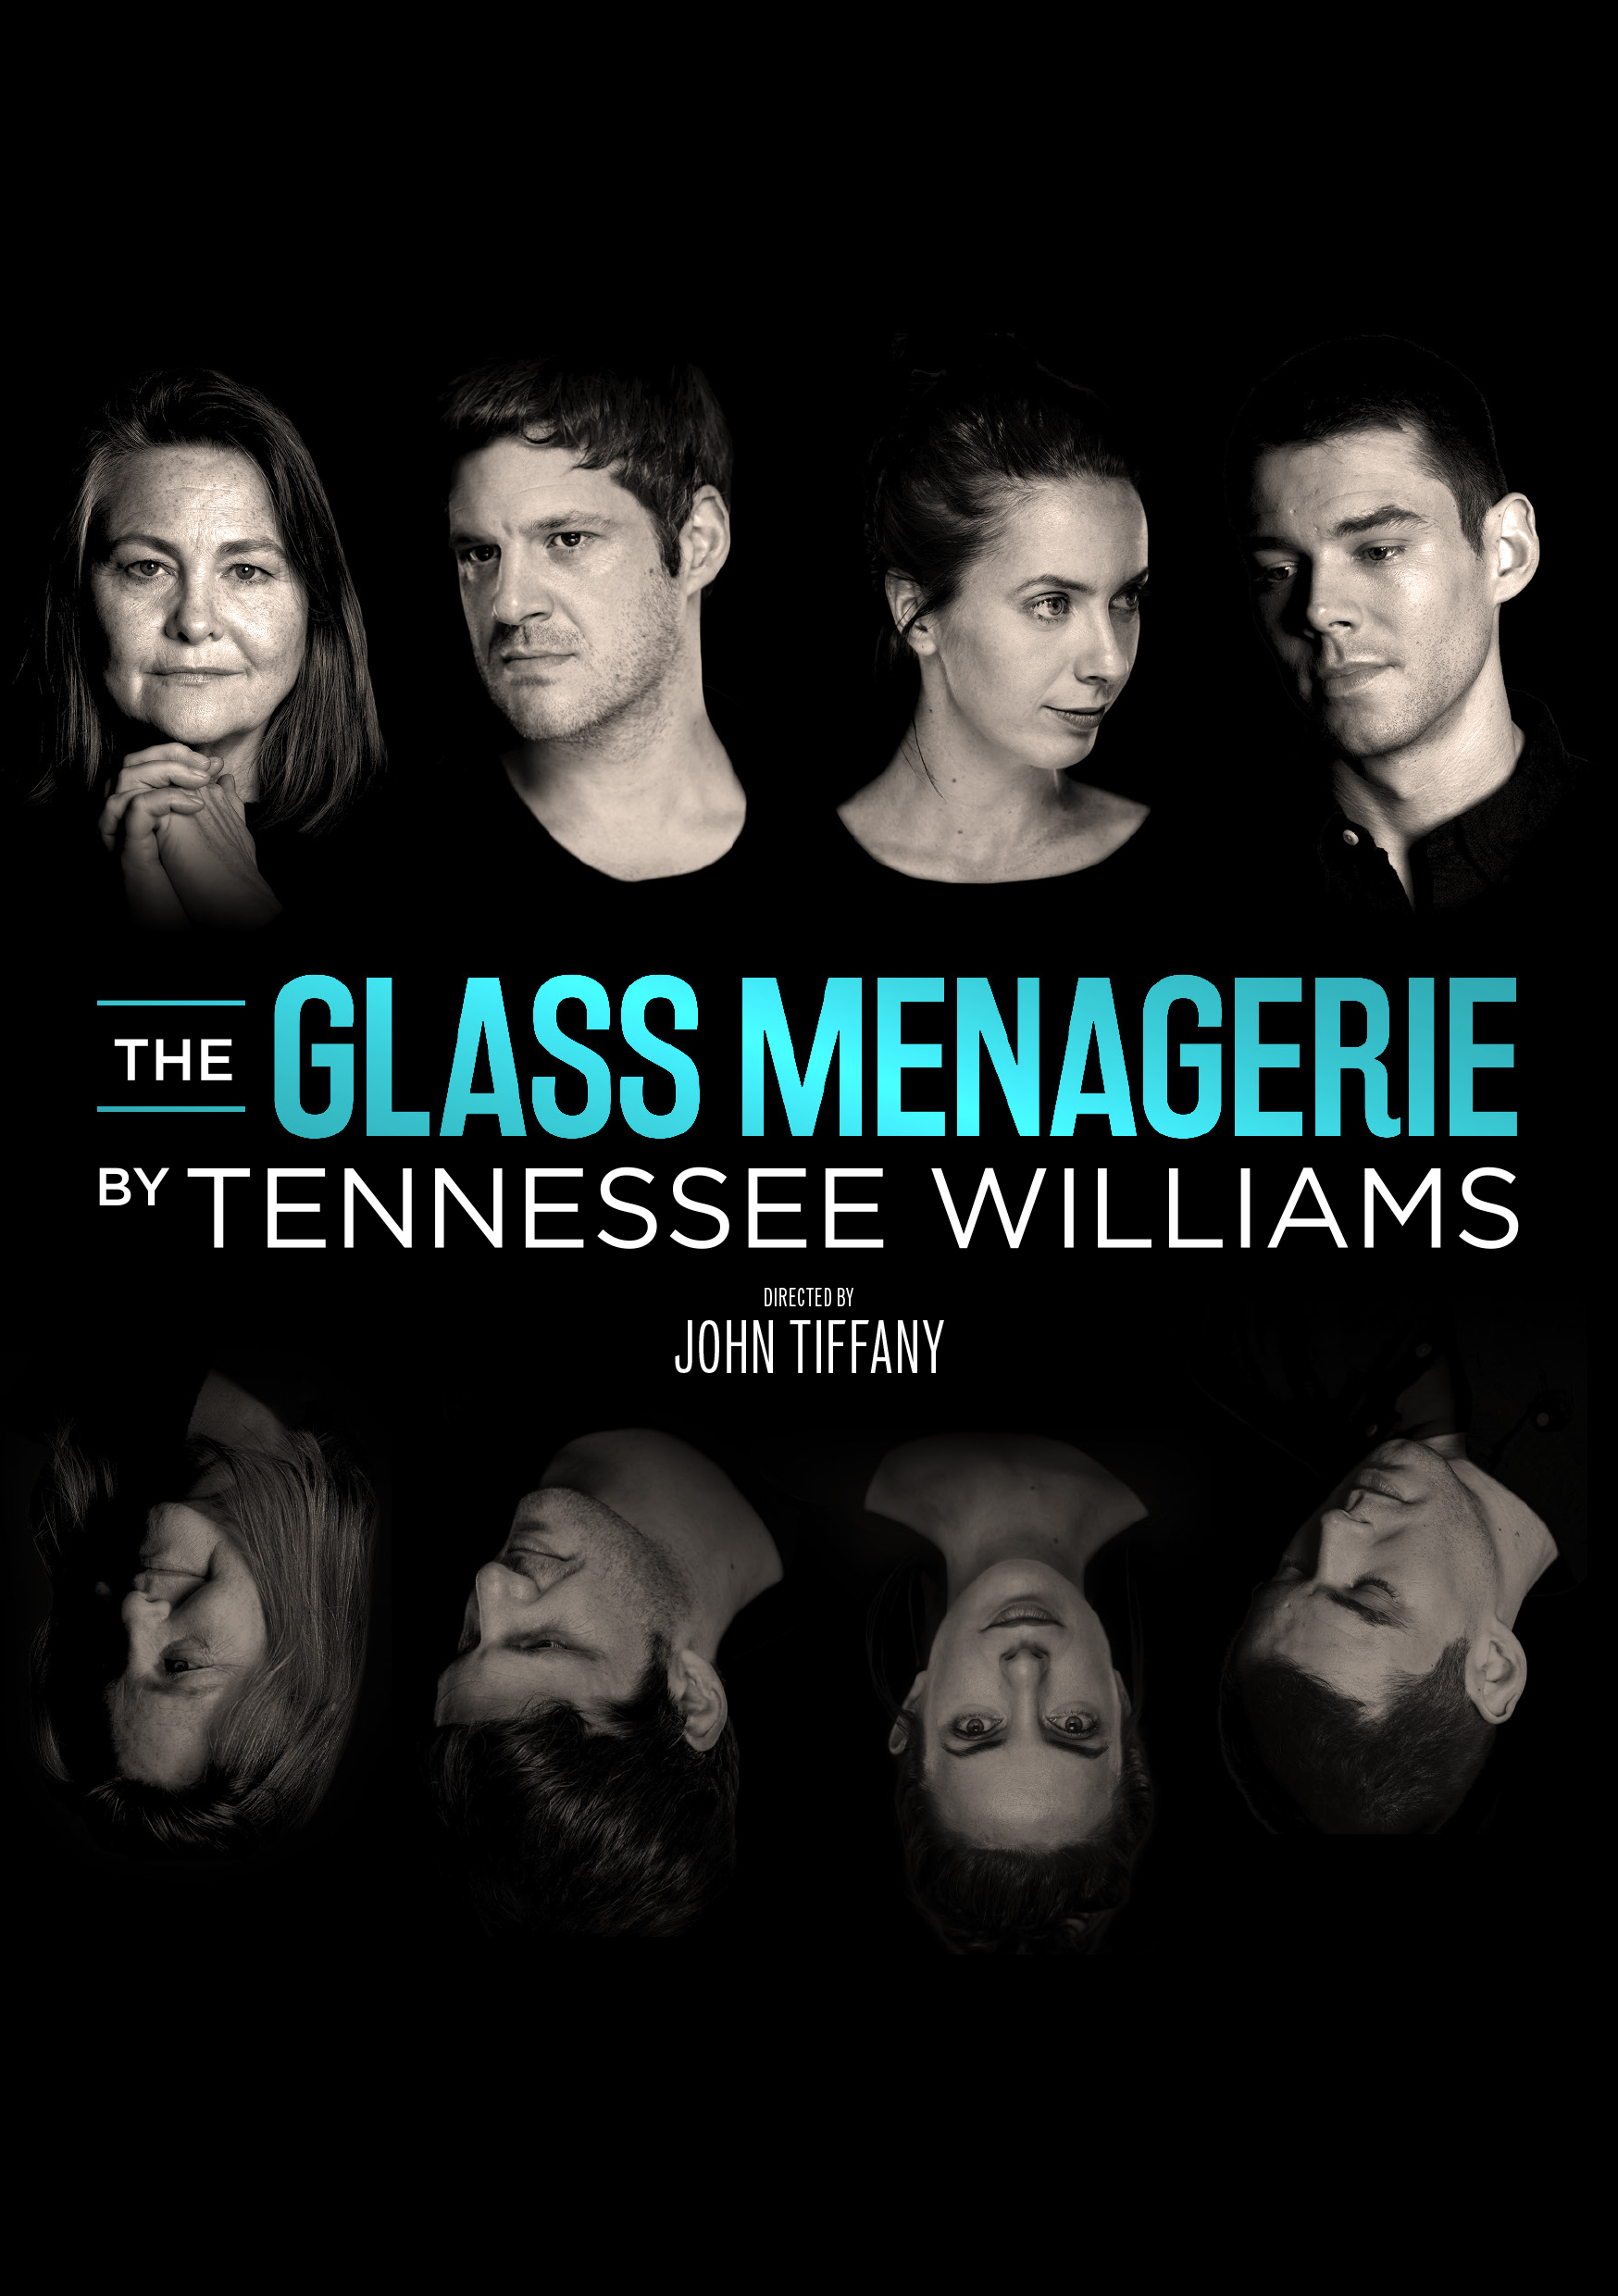 the-glass-menagerie-poster-image-jpg